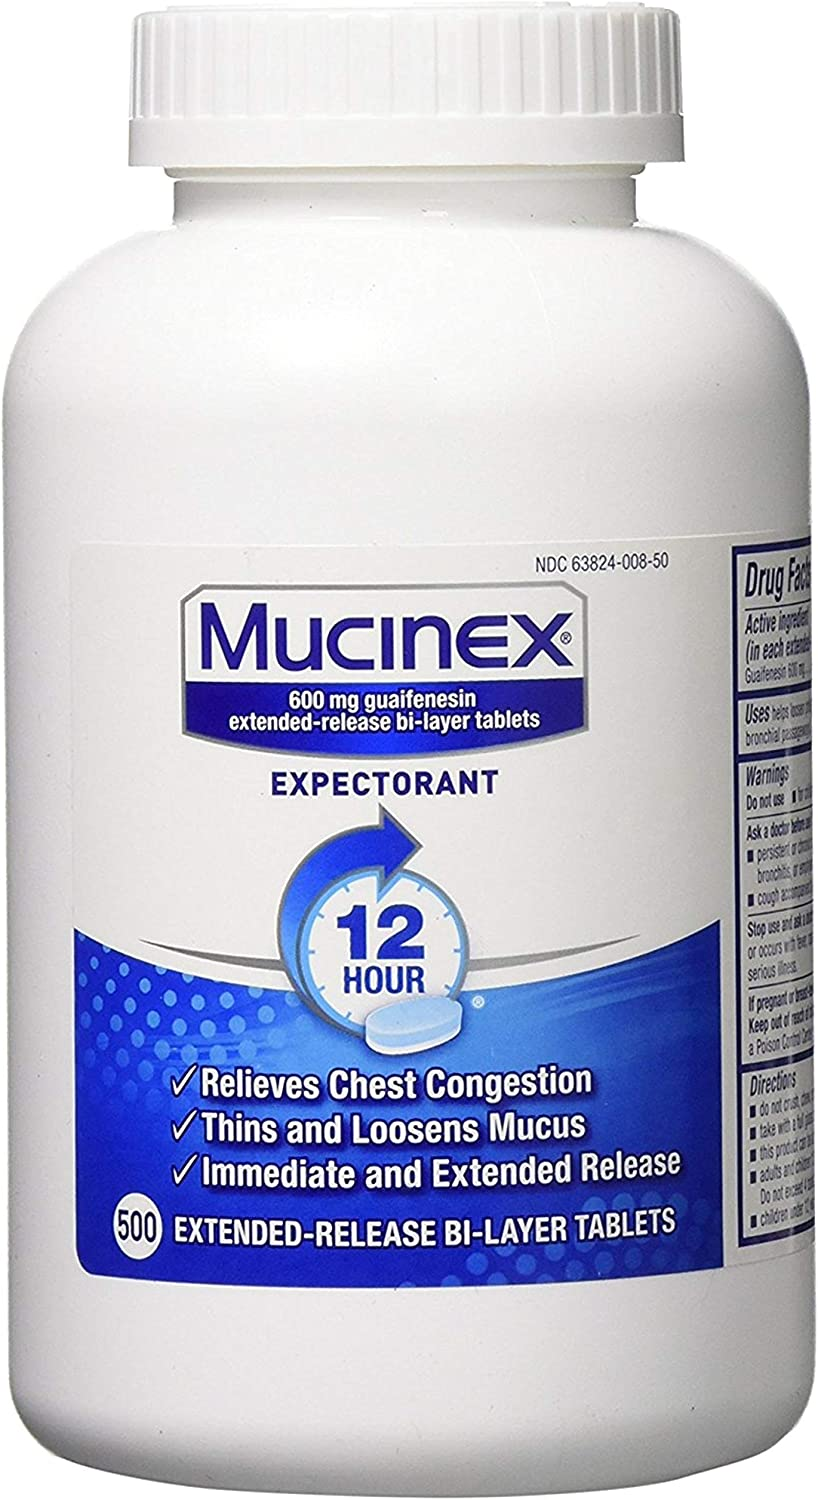 Chest Congestion, Mucinex 12 Hour Extended Release Tablets, 500ct, 600 mg Guaifenesin Relieves Chest Congestion Caused by Excess Mucus, #1 Doctor Recommended OTC expectorant